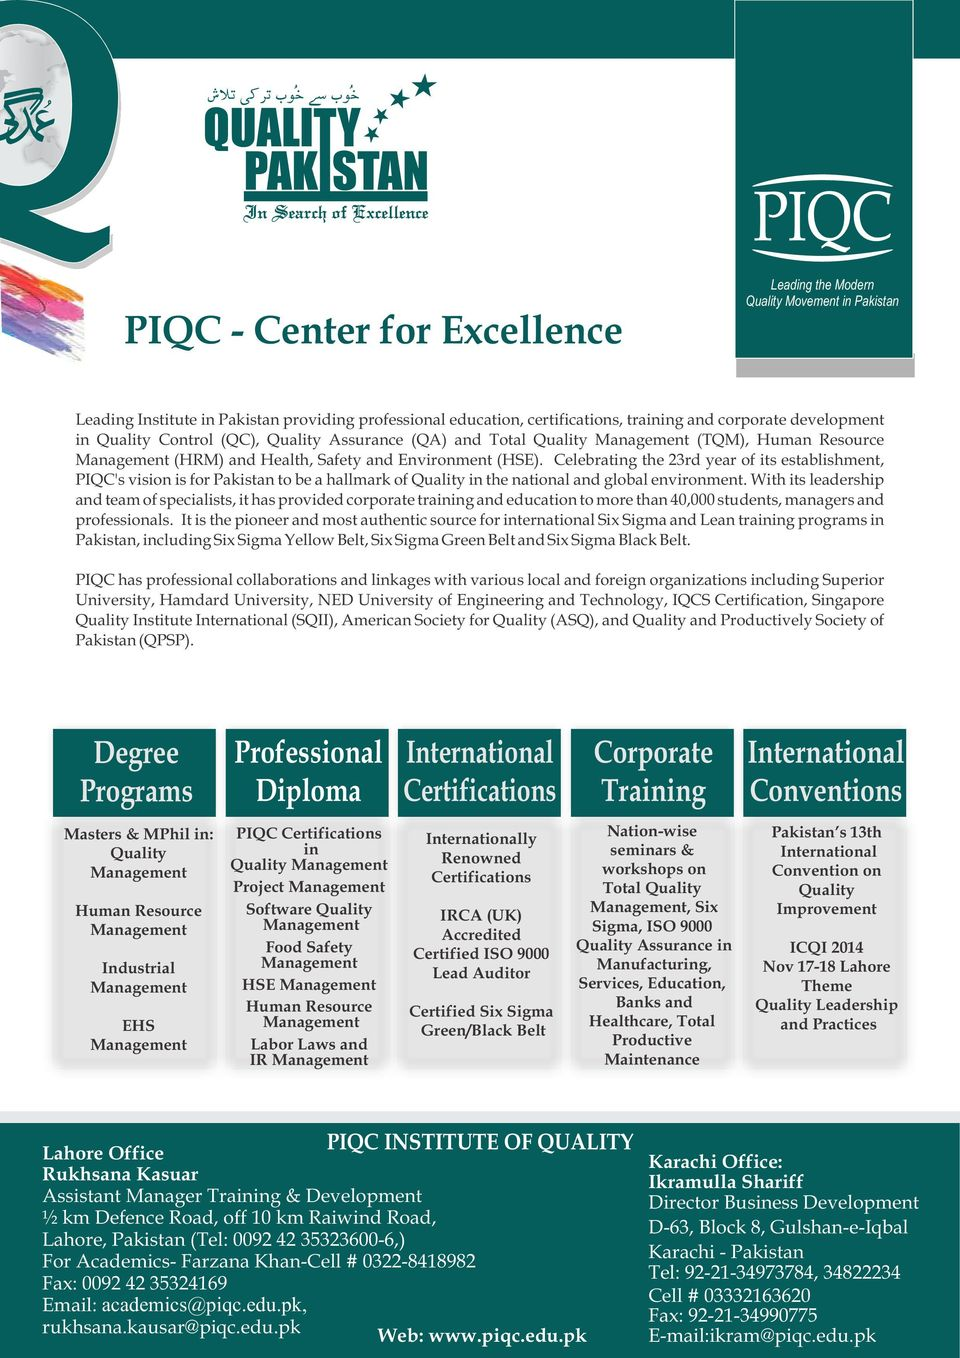 Celebrating the 2rd year of its establishment, PIQC's vision is for Pakistan to be a hallmark of Quality in the national and global environment.